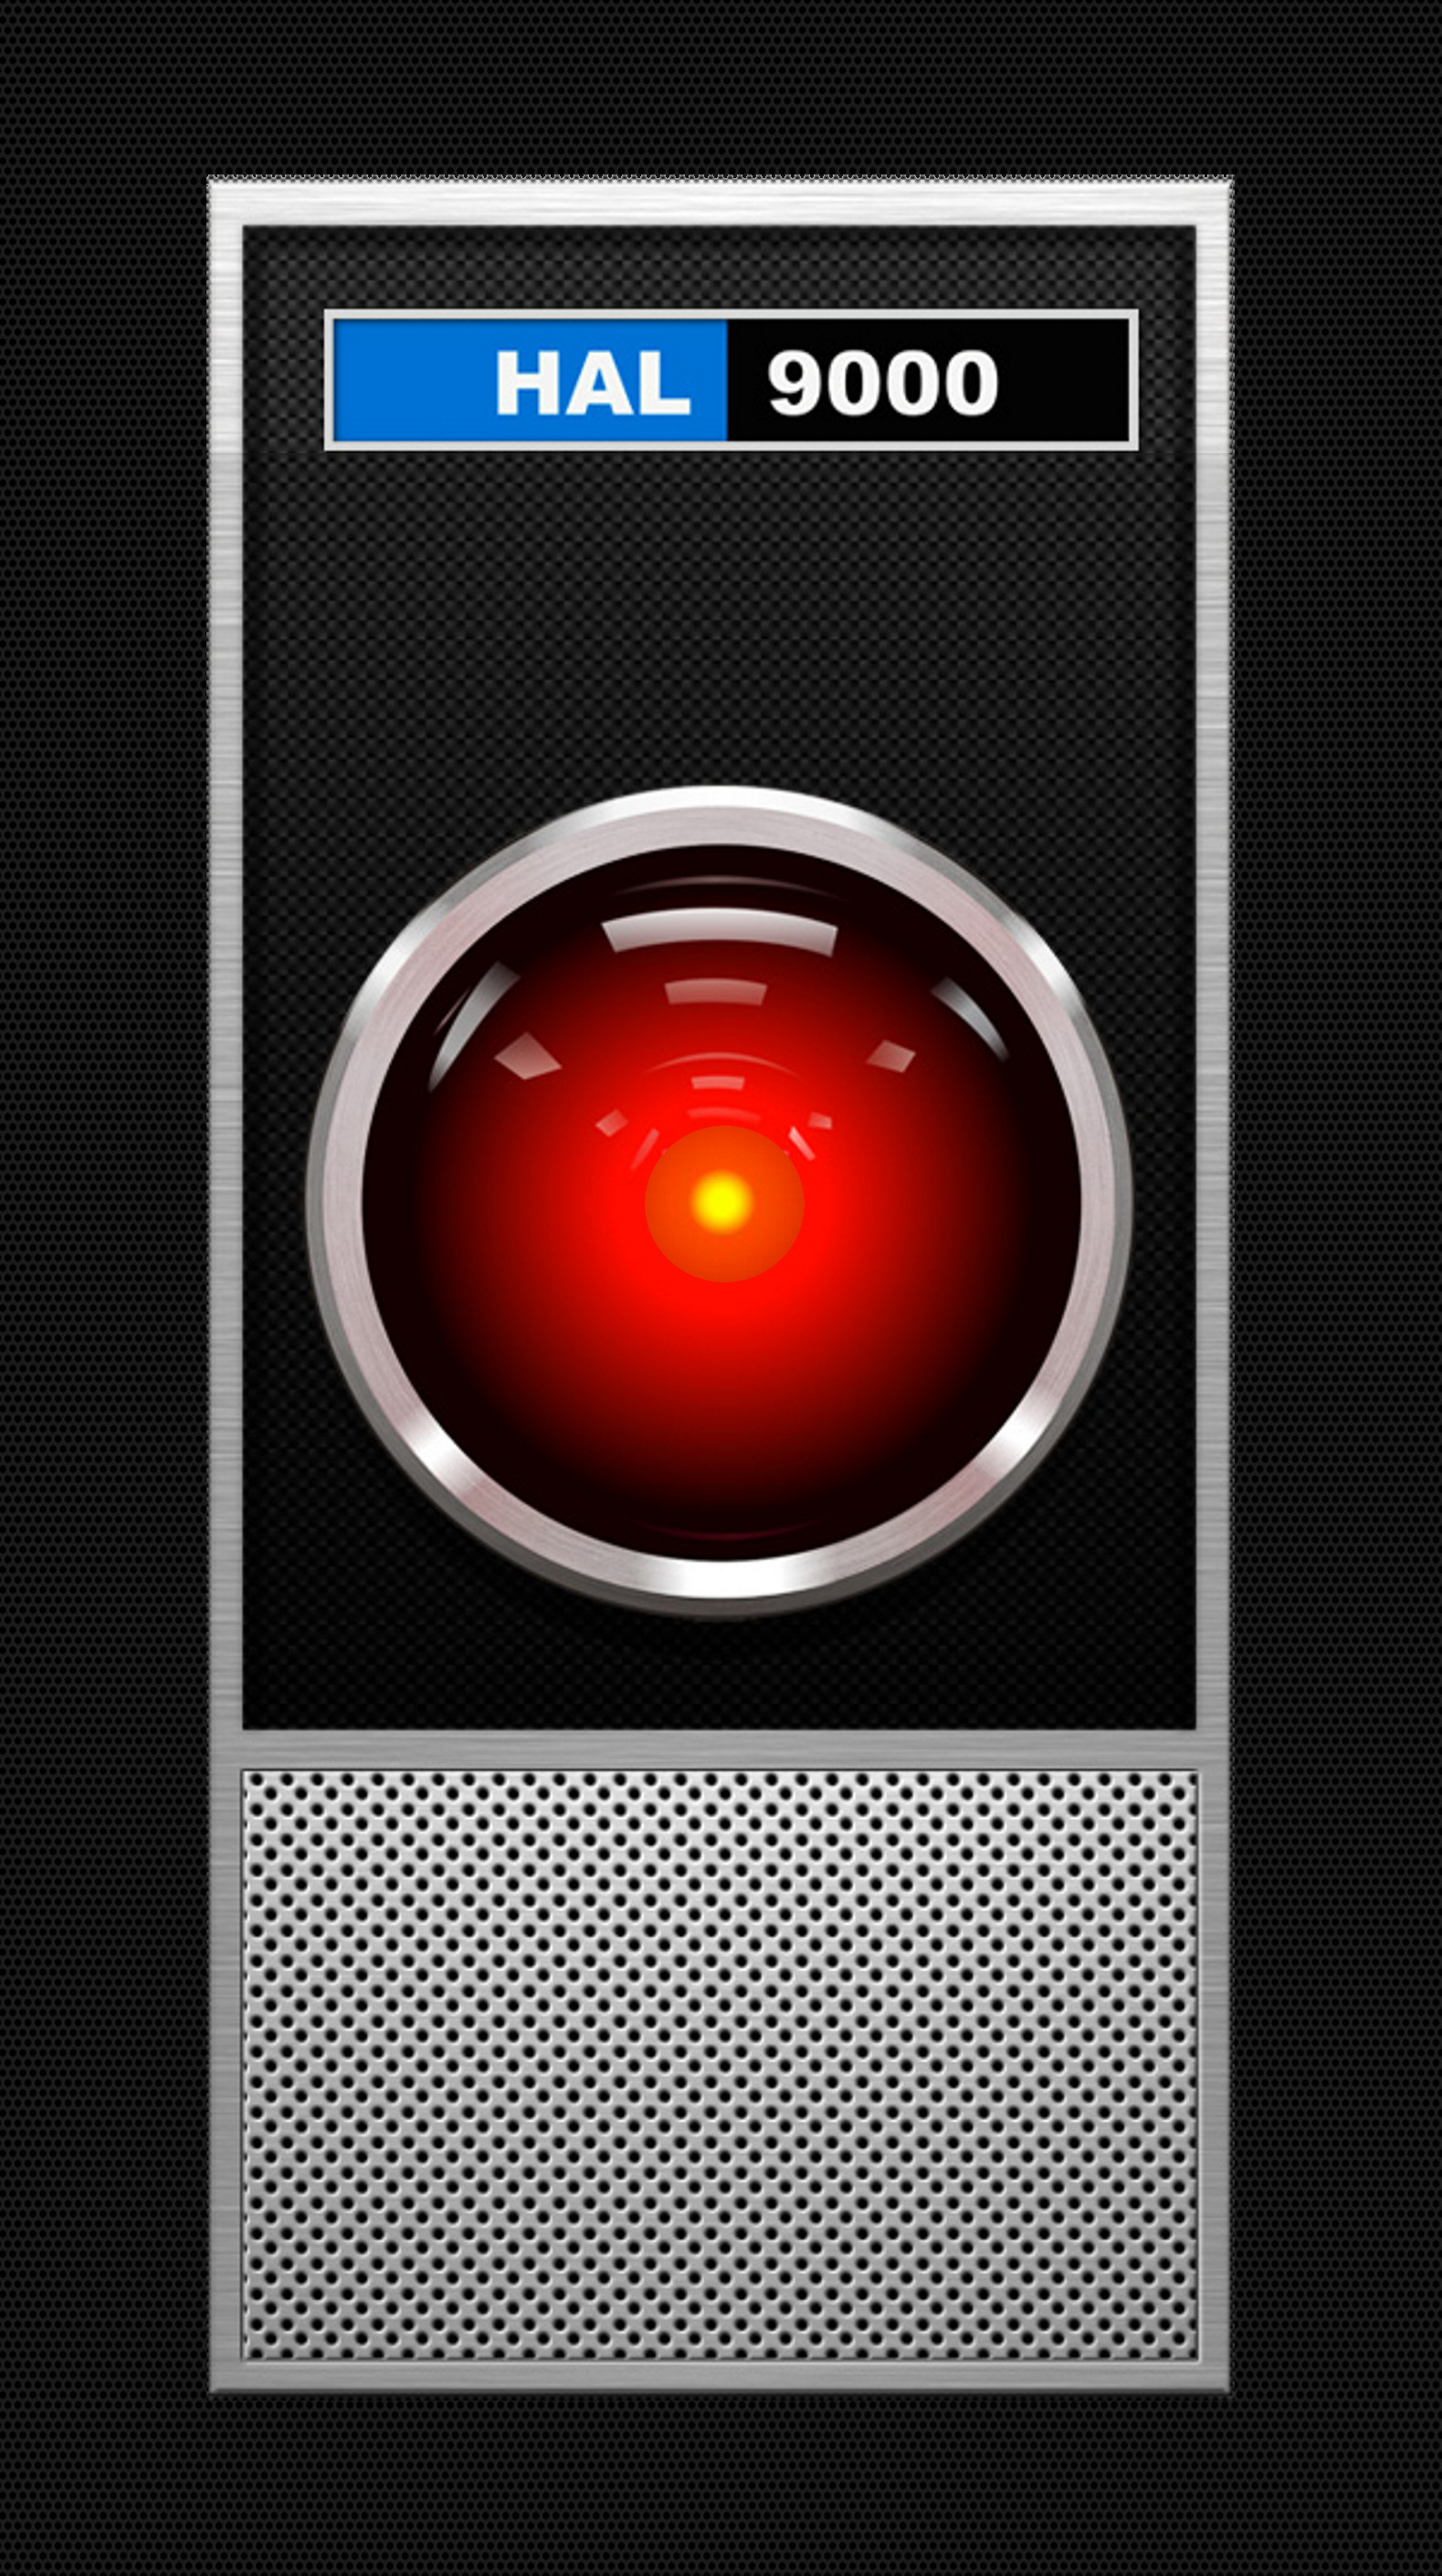 Res: 1579x2820, 2001 HAL9000 Interface Active Lock Screen Wallpaper for iPhone X Parallax  View. Time Fits perfectly into black area between Logo and Lens.